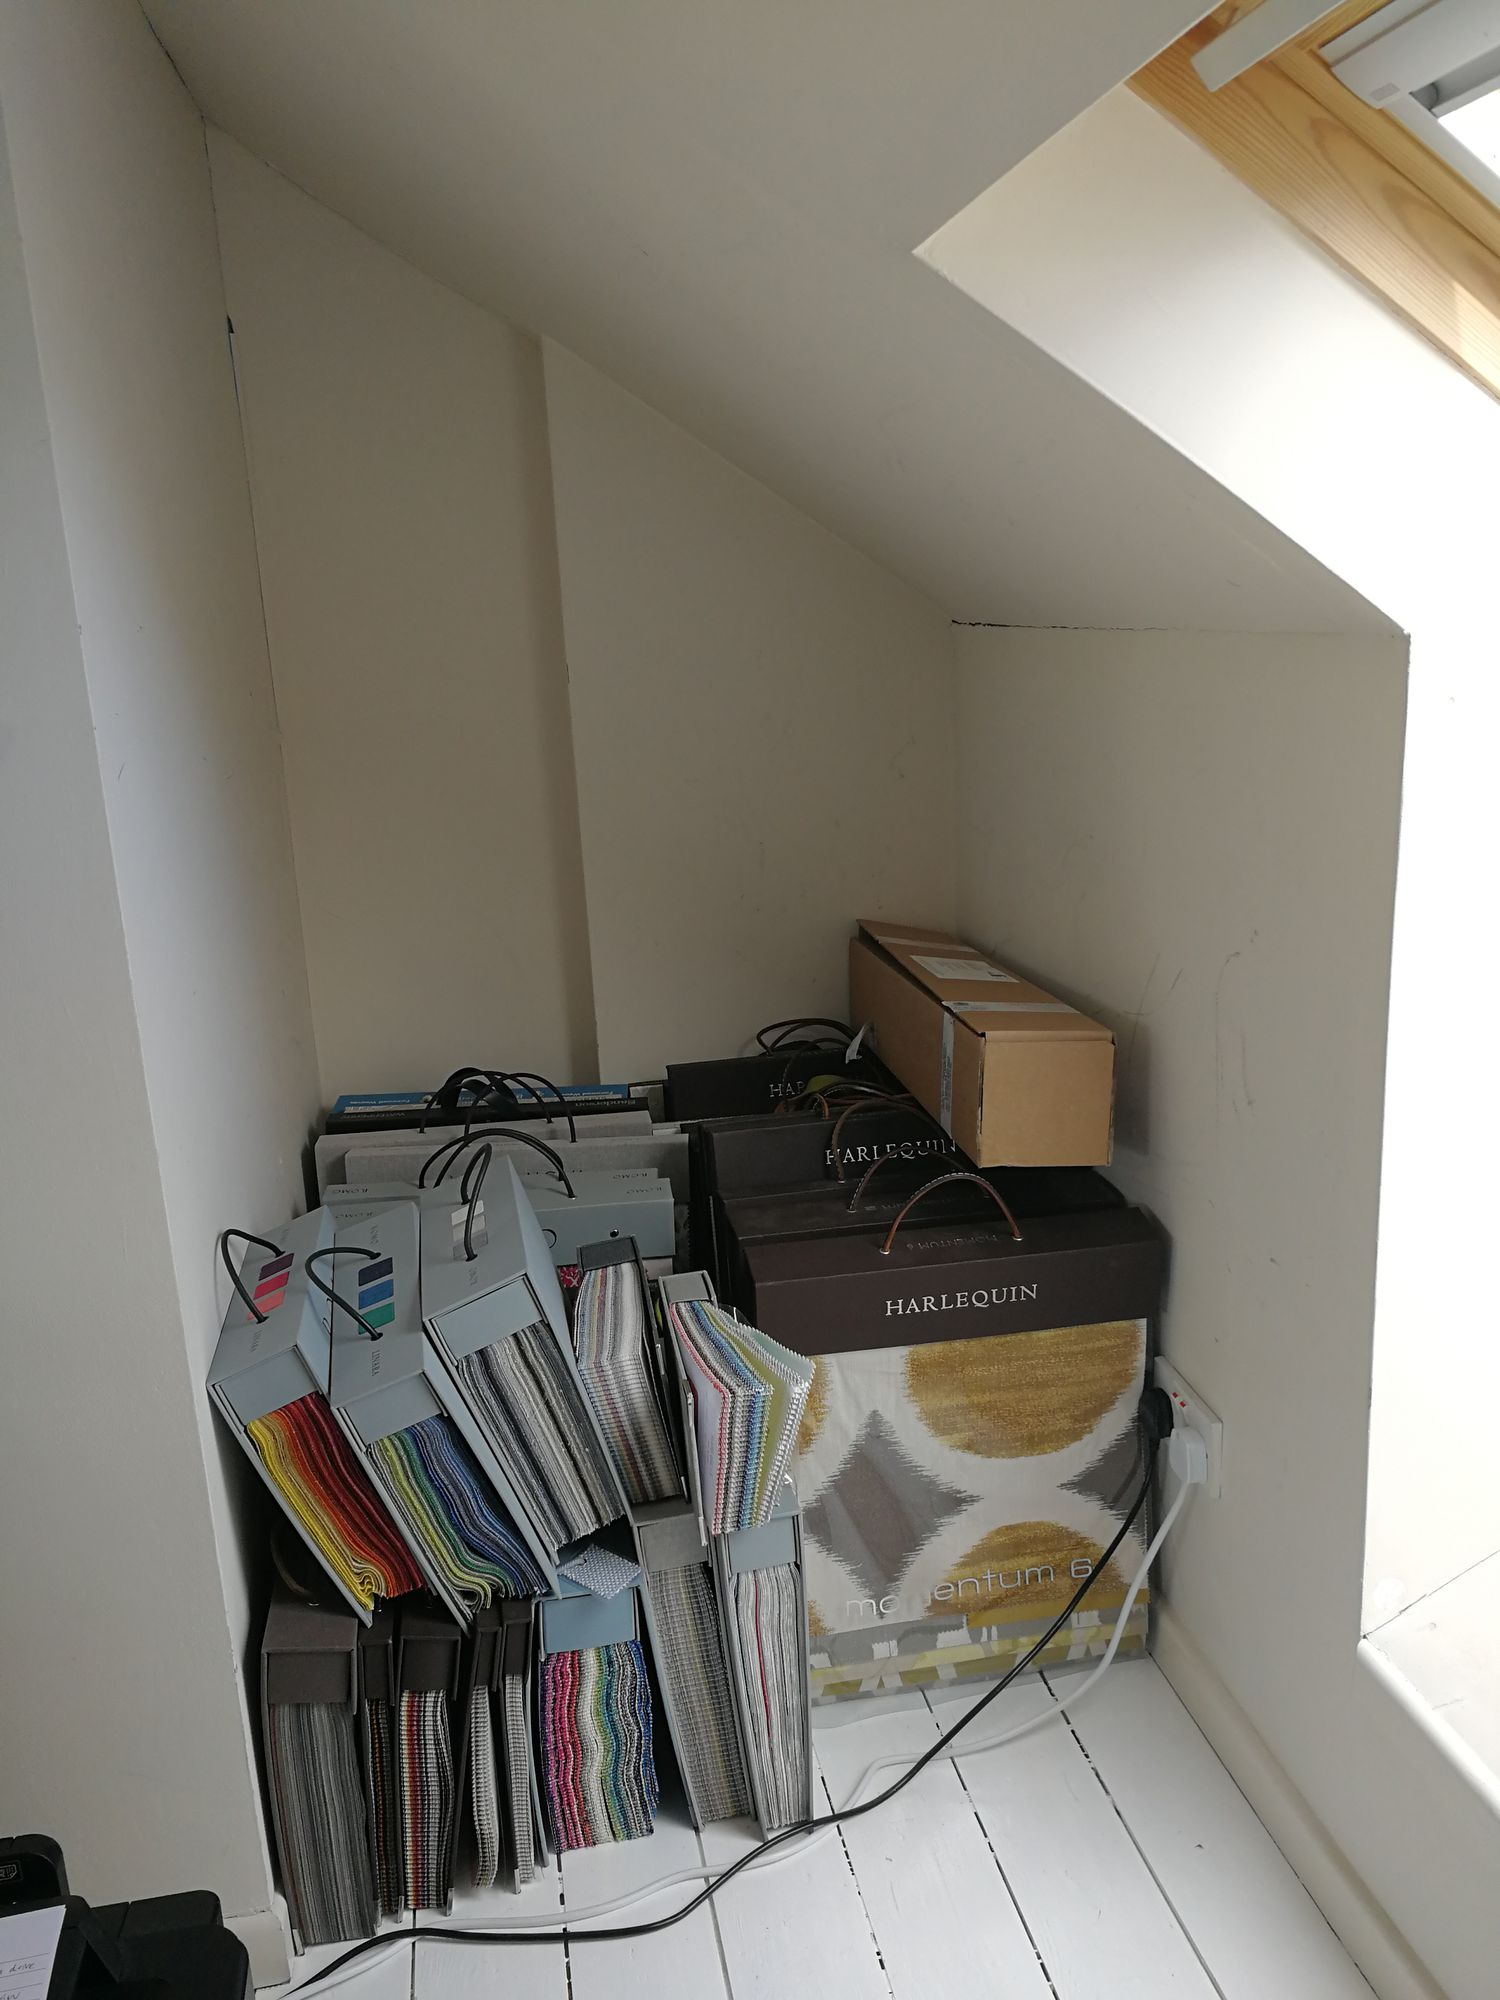 There was no shelving here before, so the fabrics books are stored on the floor.